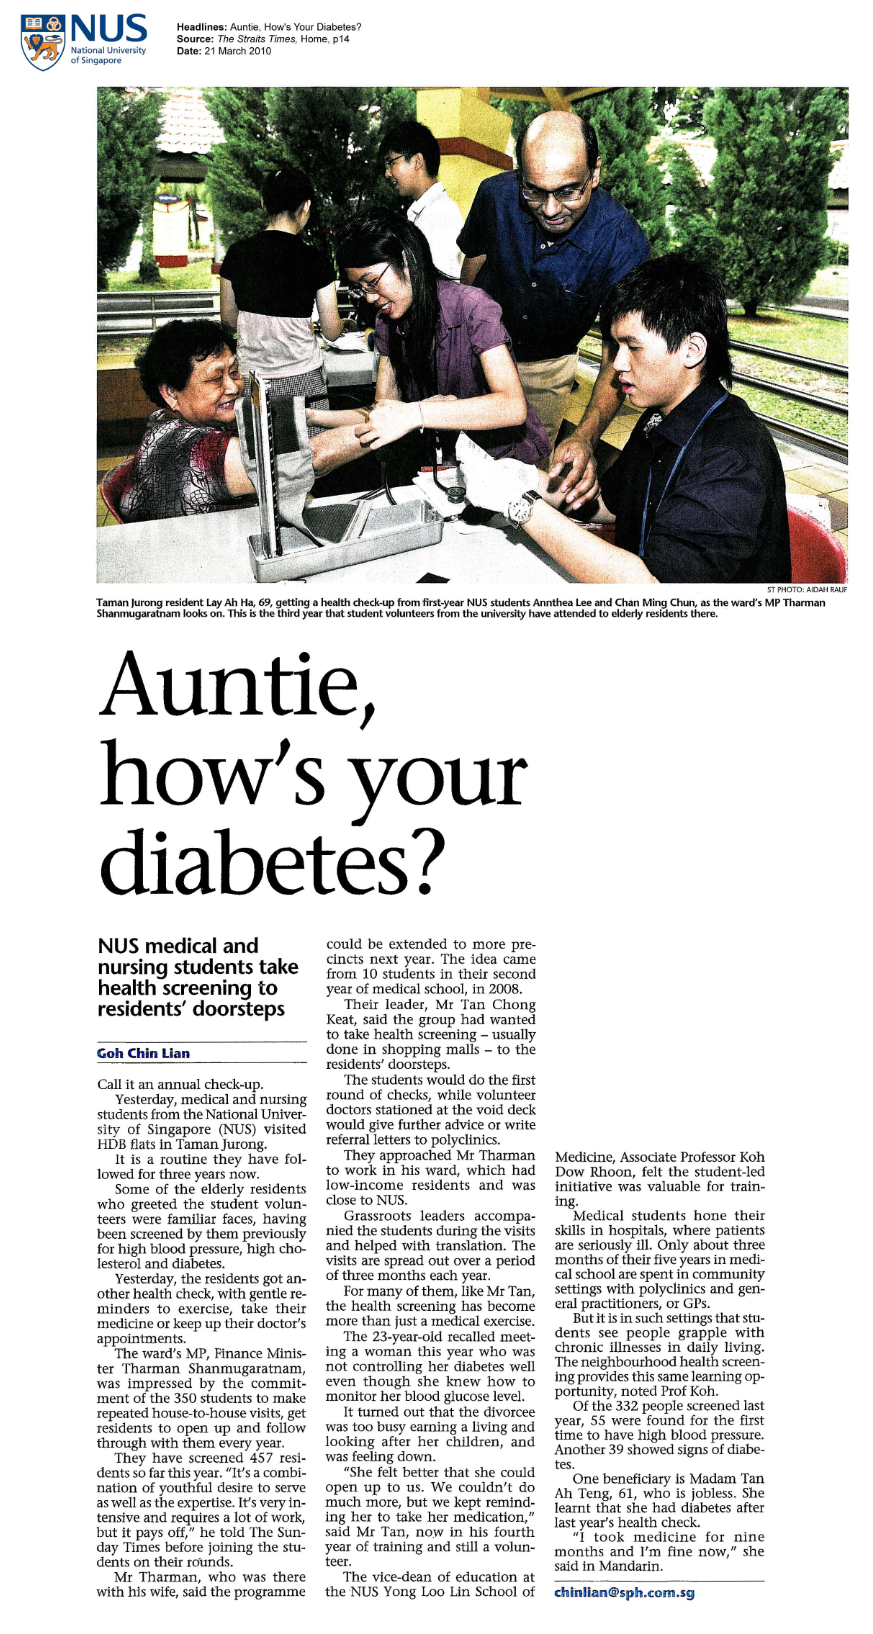 Auntie, how's your diabetes? | 21 March 2010